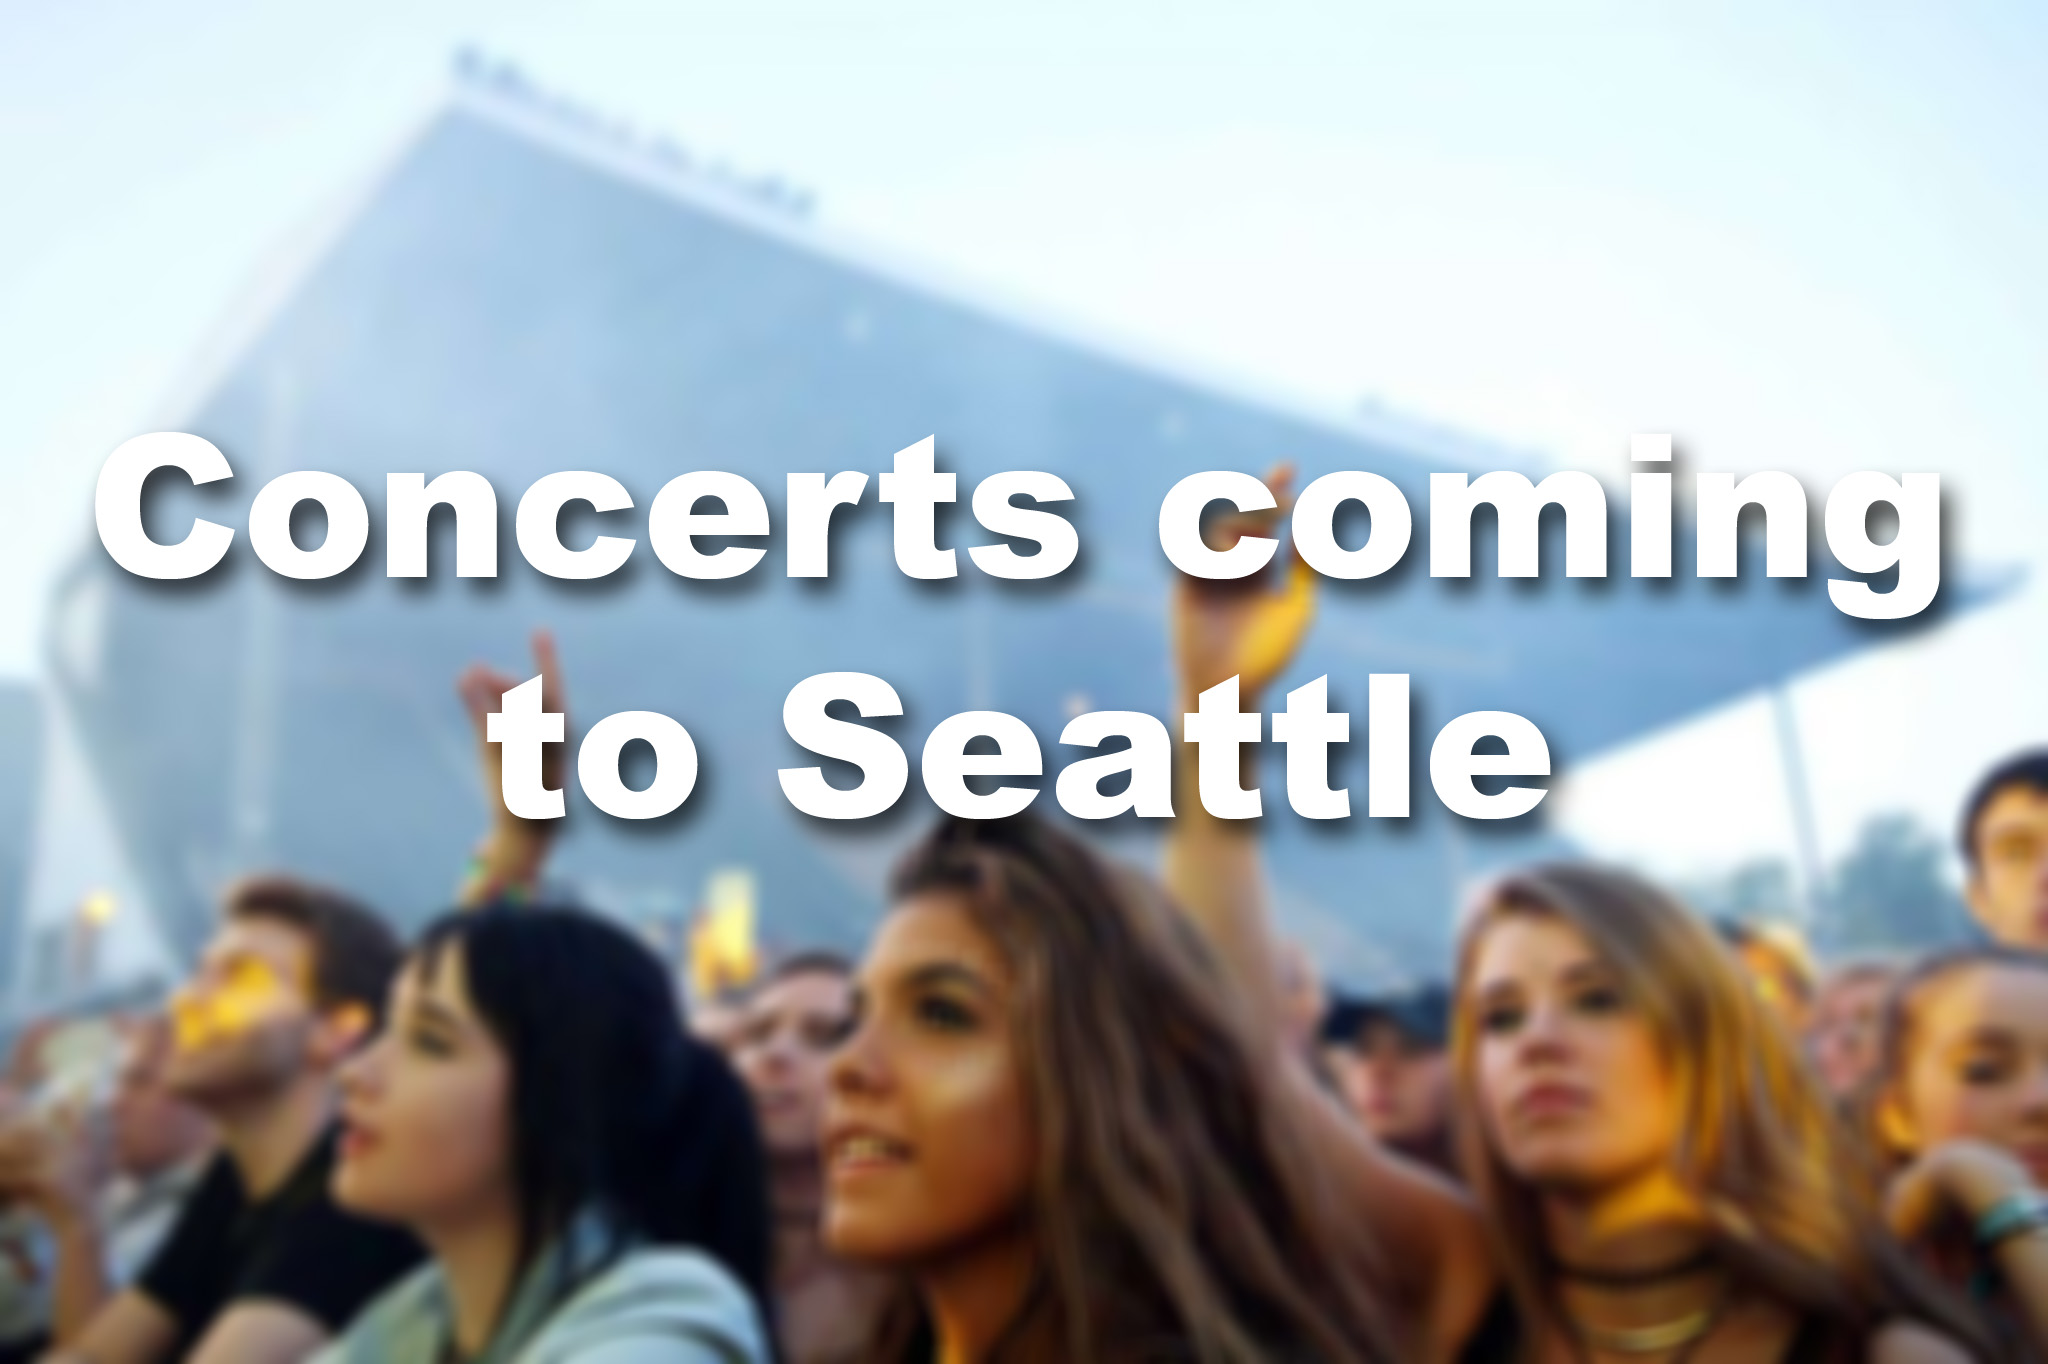 Still mourning Sasquatch? Try checking out some of these upcoming concerts